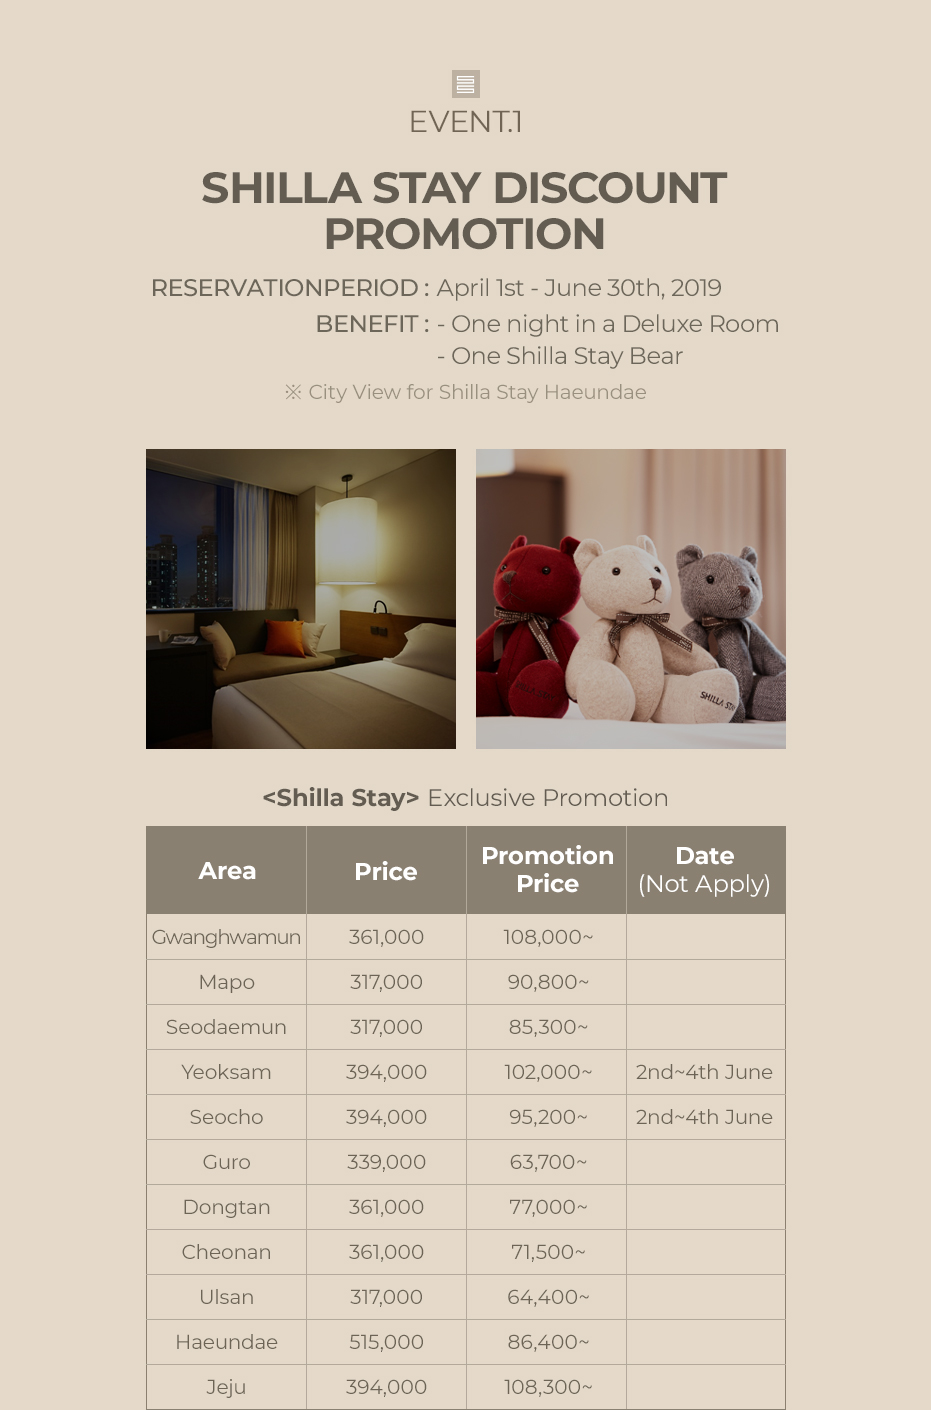 EVENT 1 SHILLA STAY DISCOUNT PROMOTION